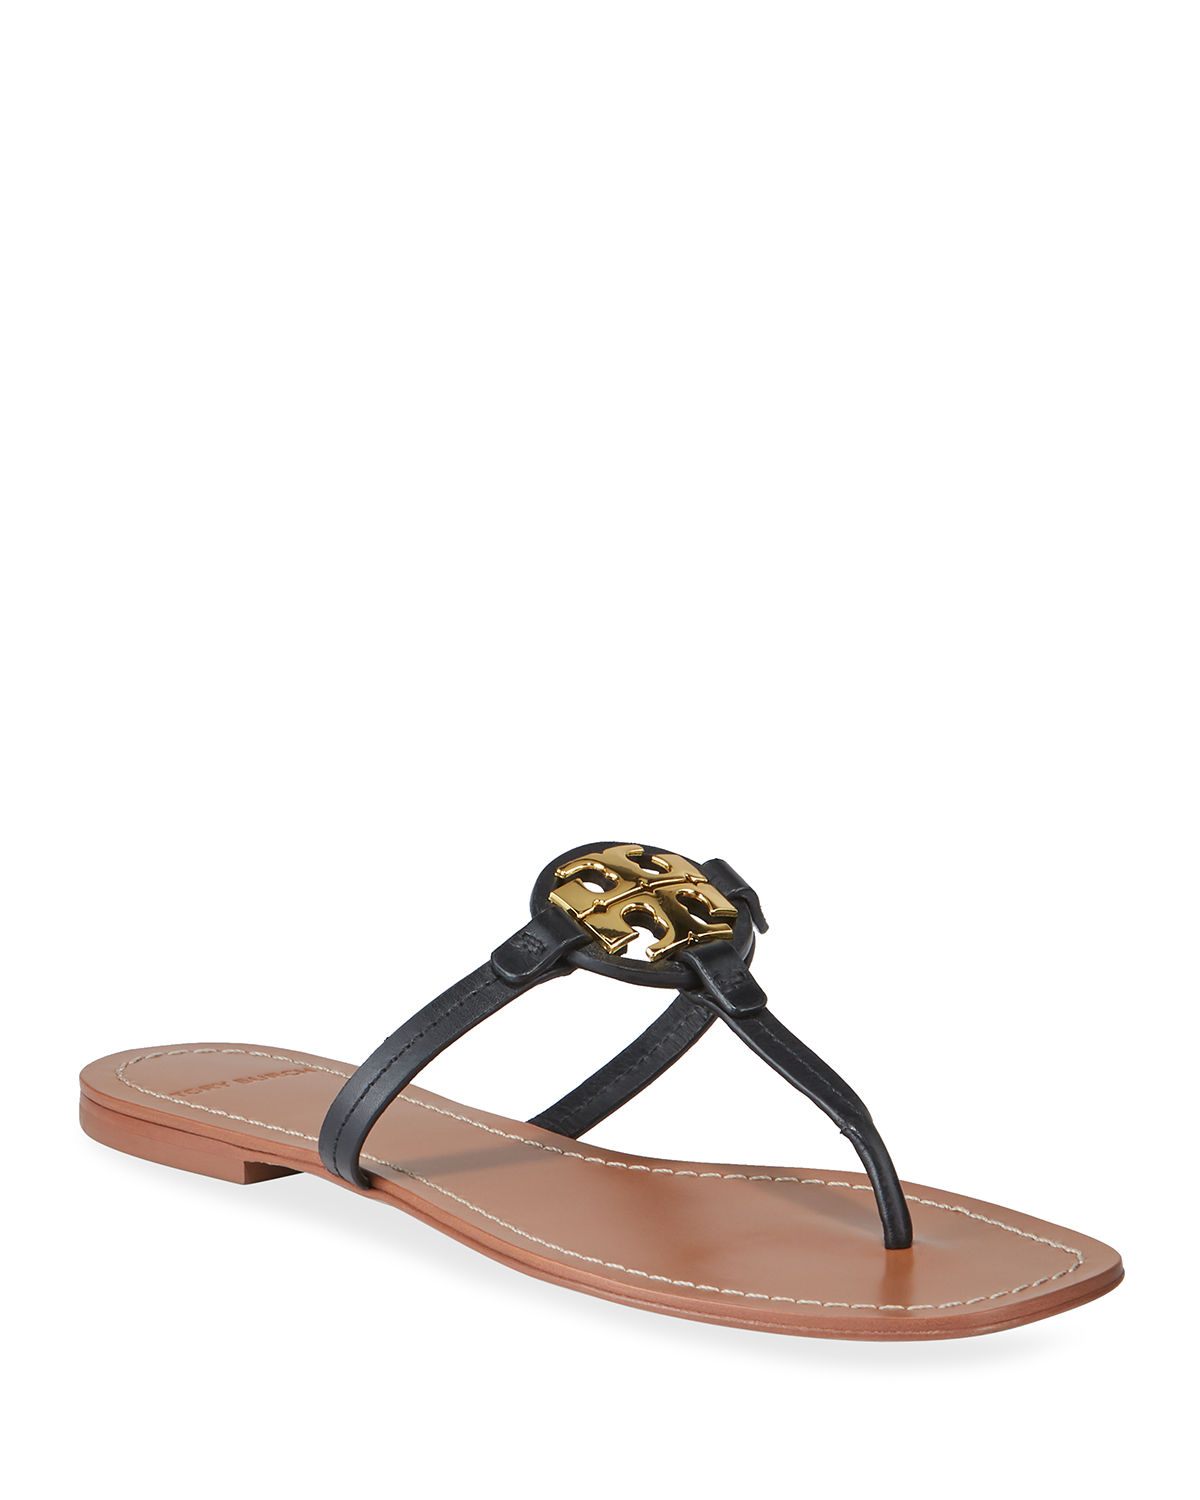 Tory Burch Sandals MILLER LOGO LEATHER THONG SANDALS